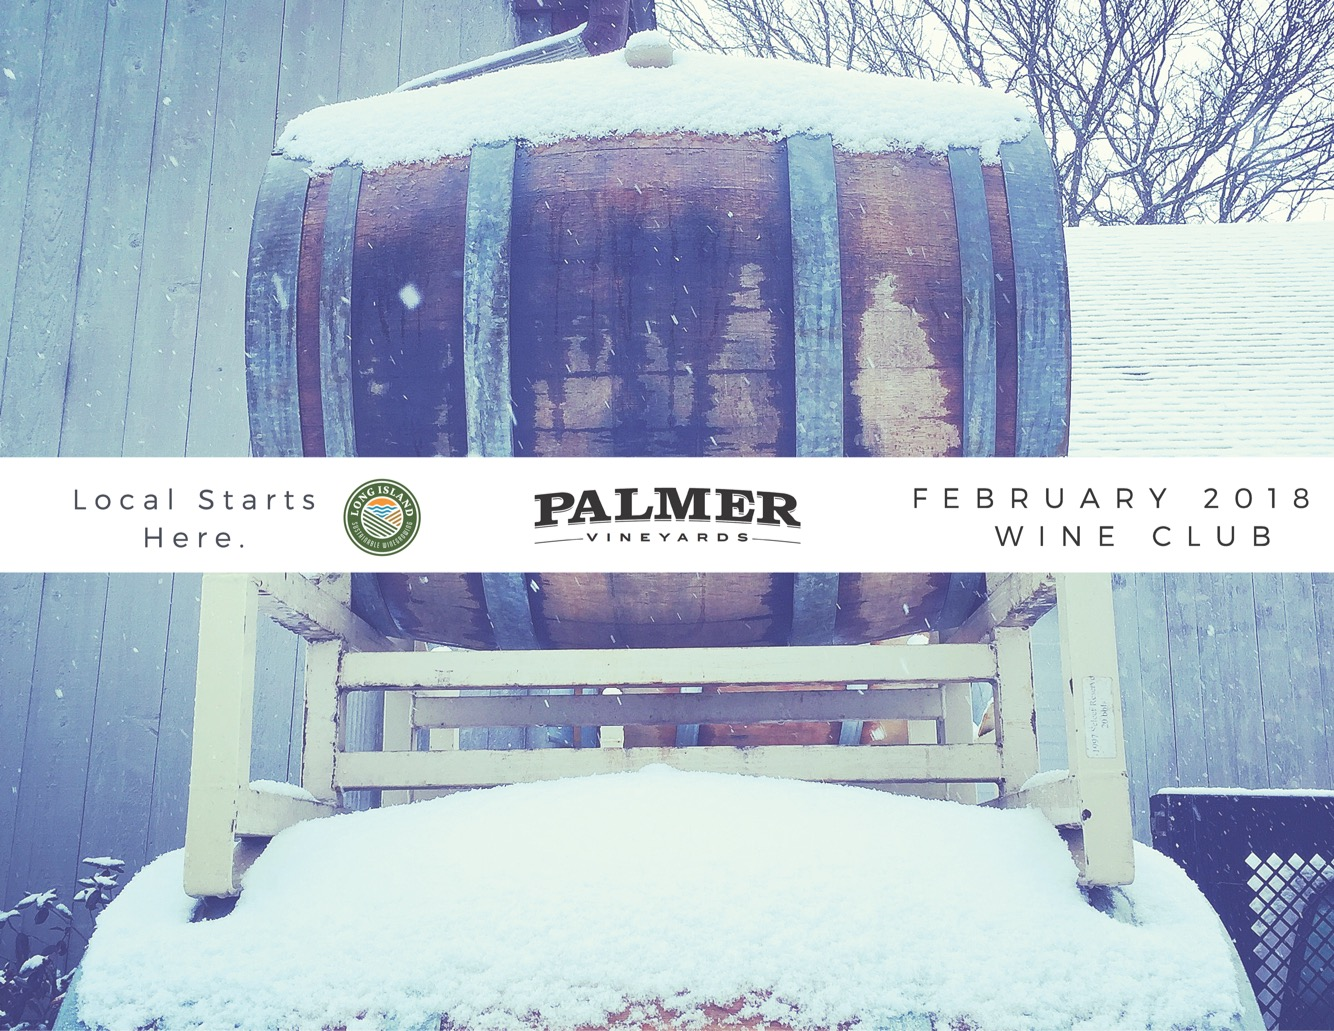 snow covered barrel